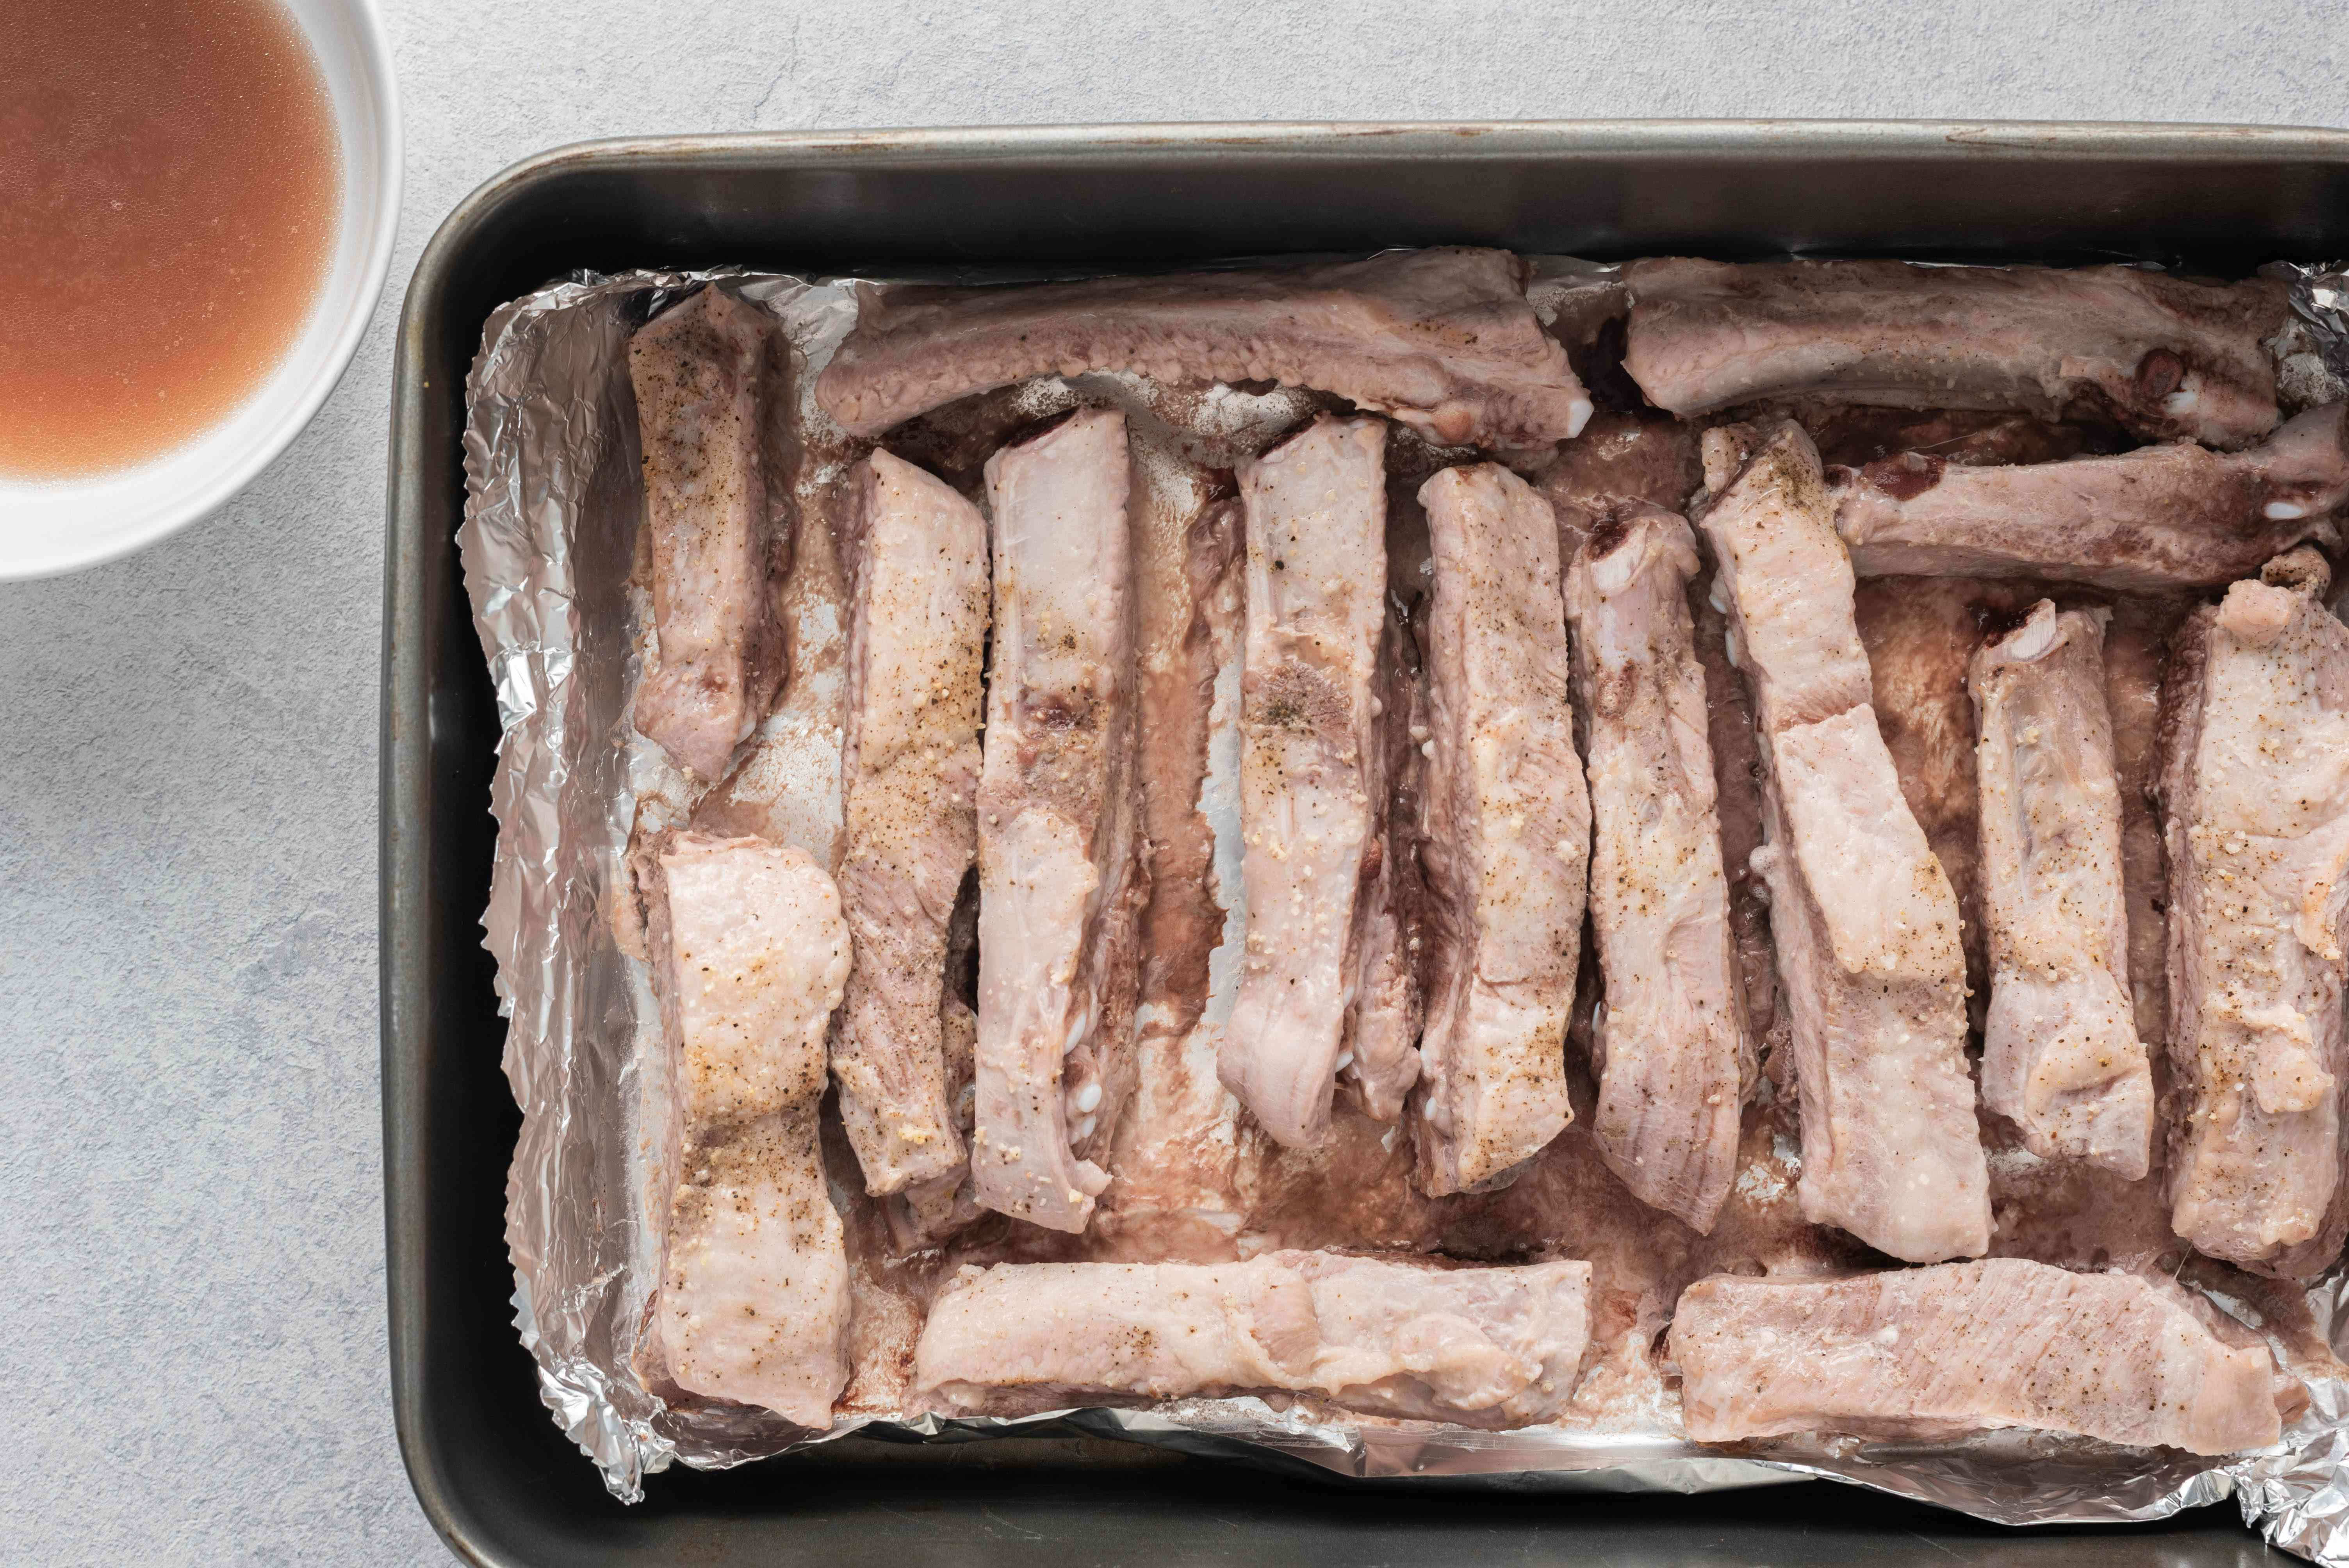 Ribs in a baking pan; liquid drained into a bowl